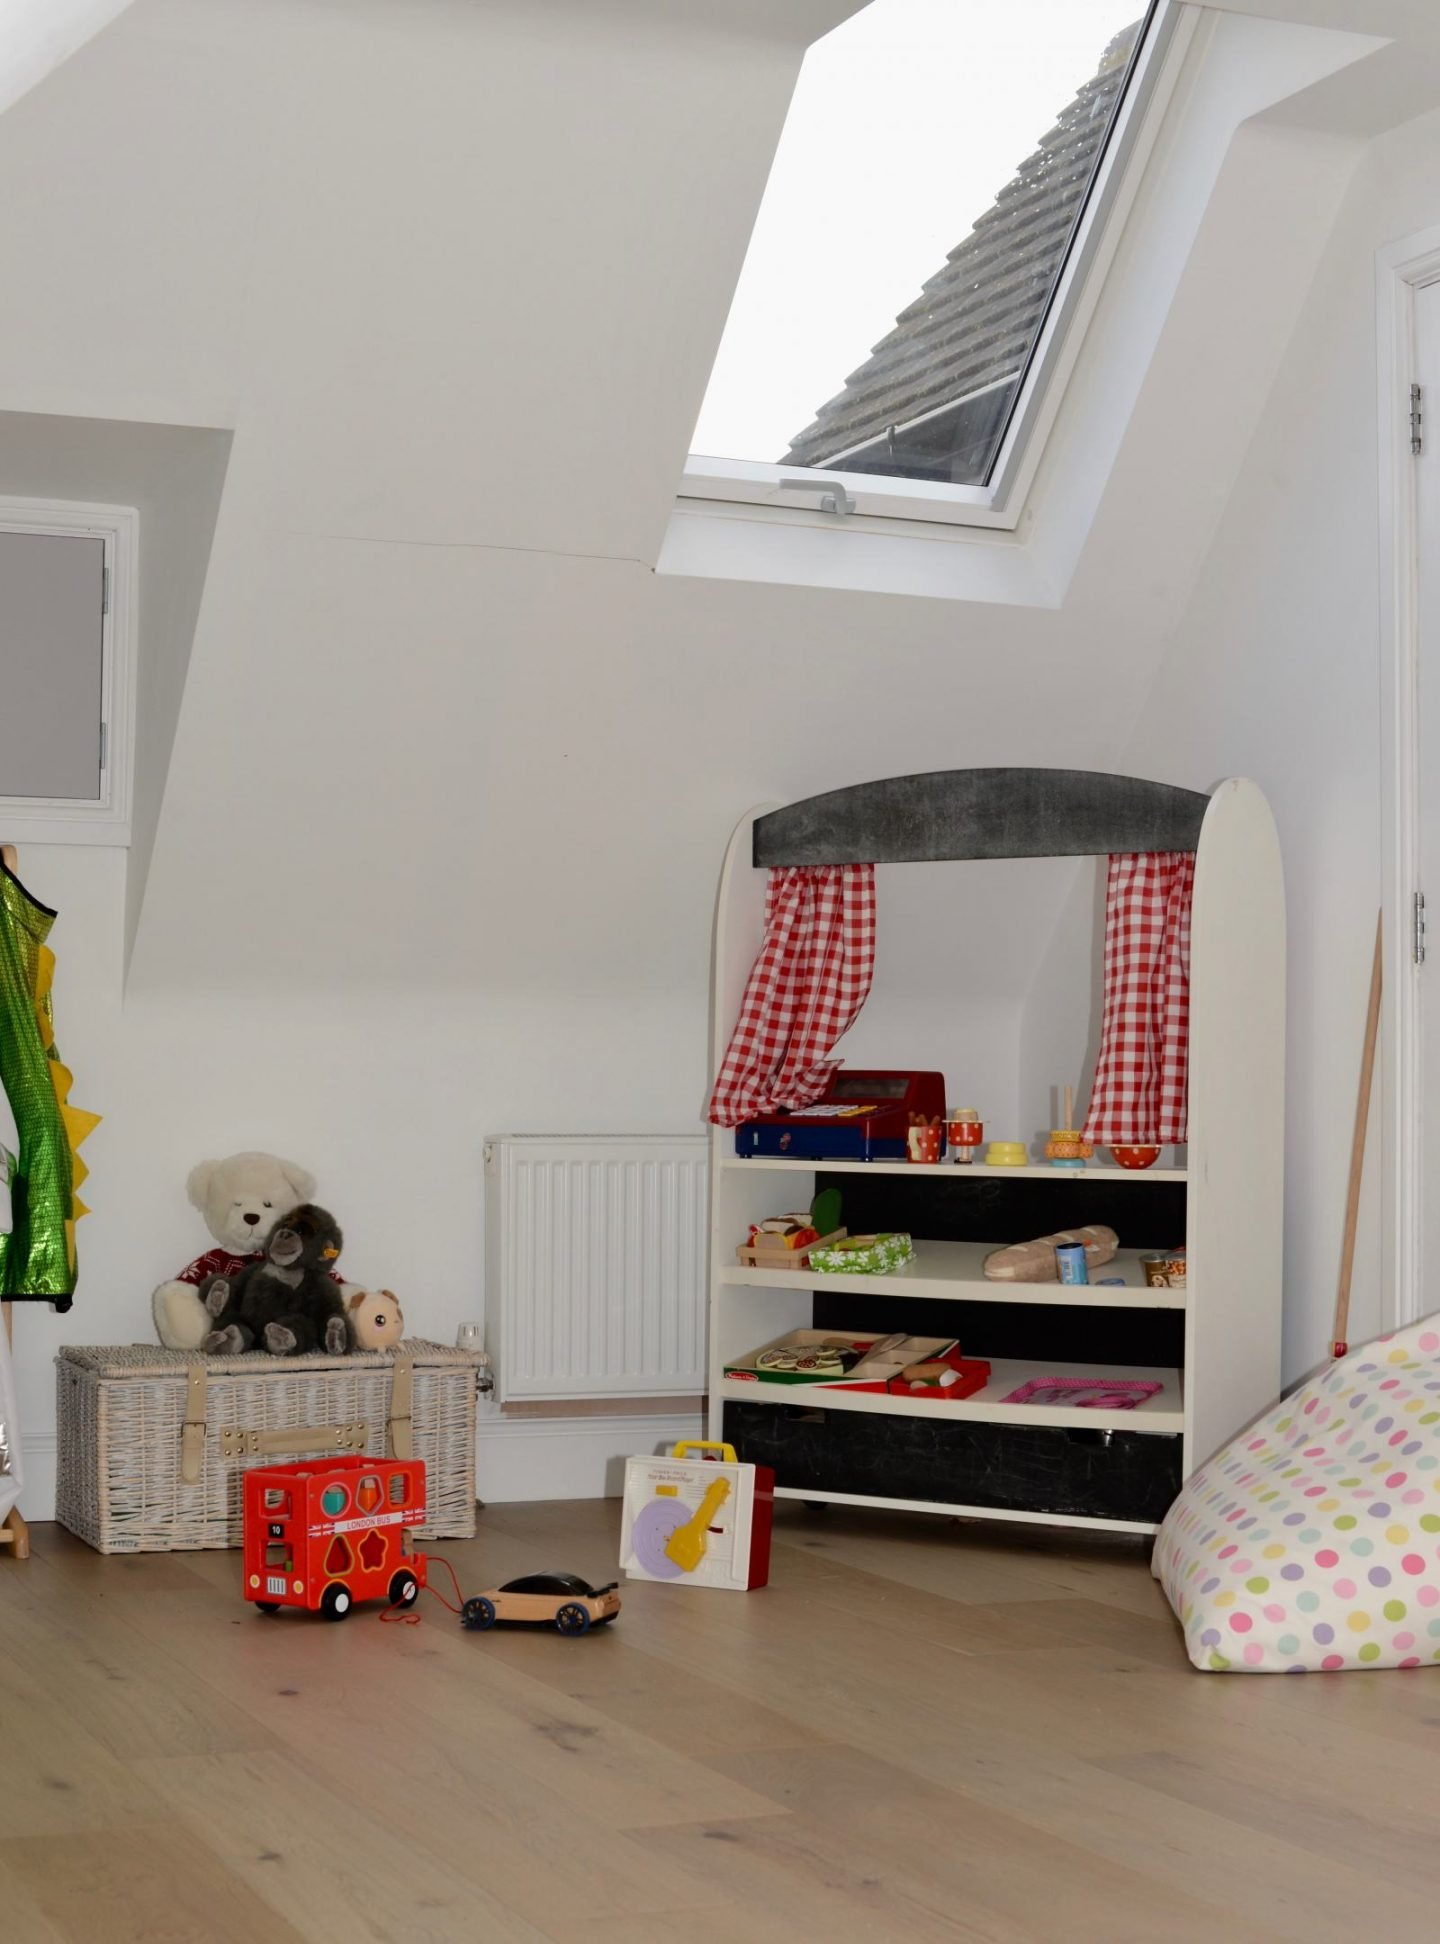 Creating extra light in a dark single story extraction with VELUX roof windows